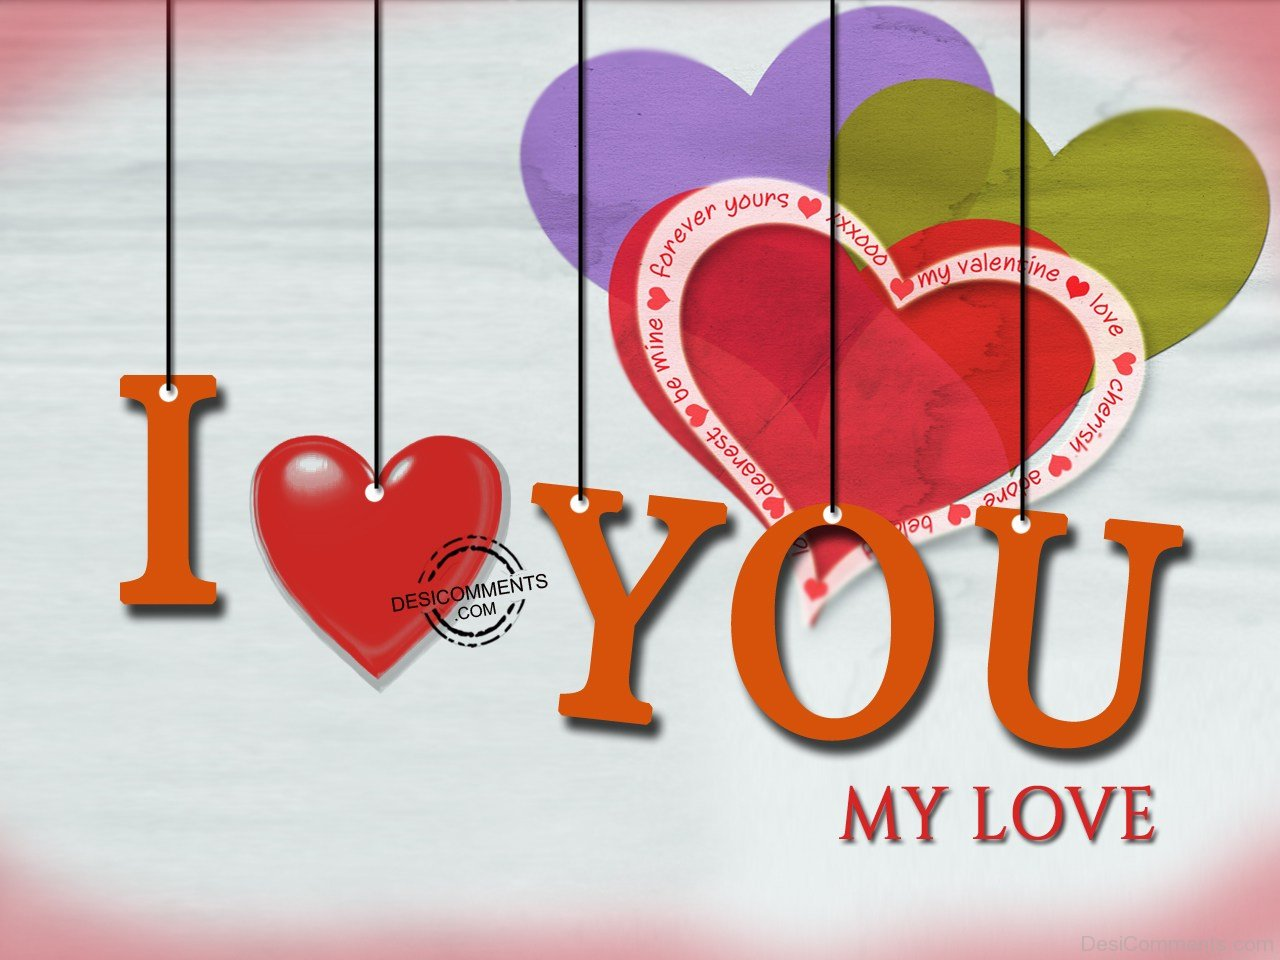 I Love You,my Love Desicommentscom